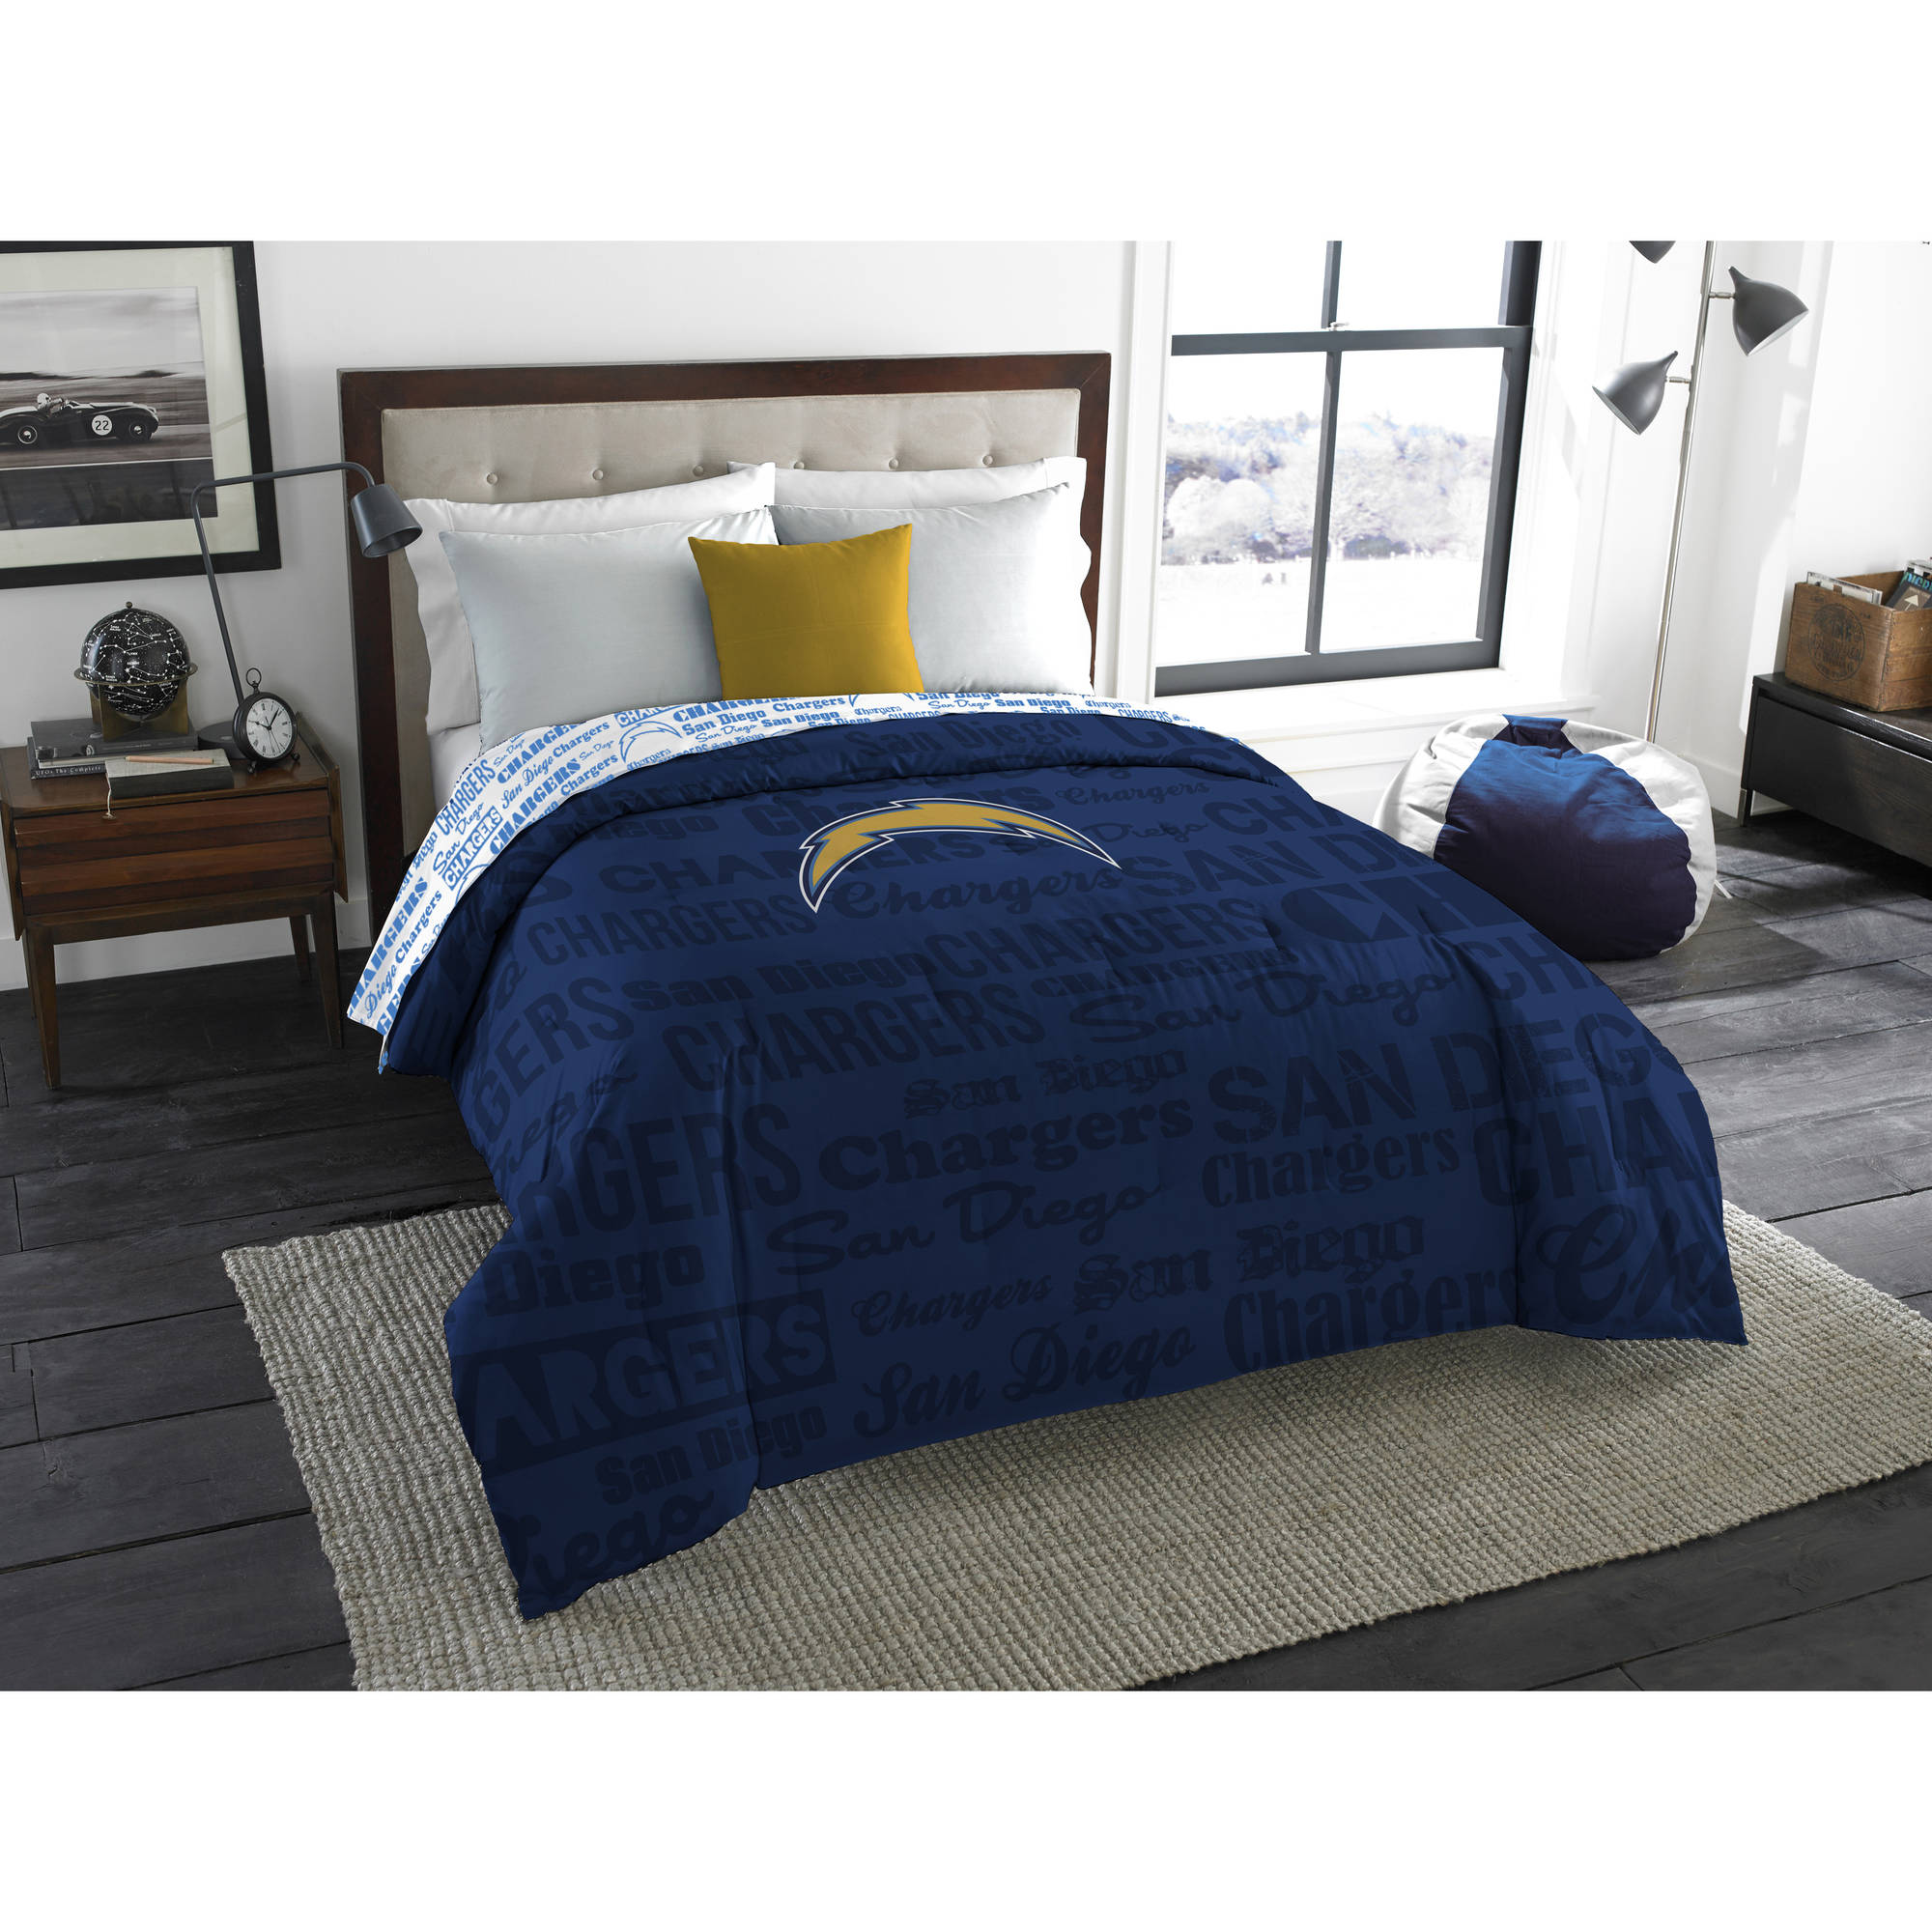 "NFL Los Angeles Chargers ""Anthem"" Twin/Full Bedding Comforter"